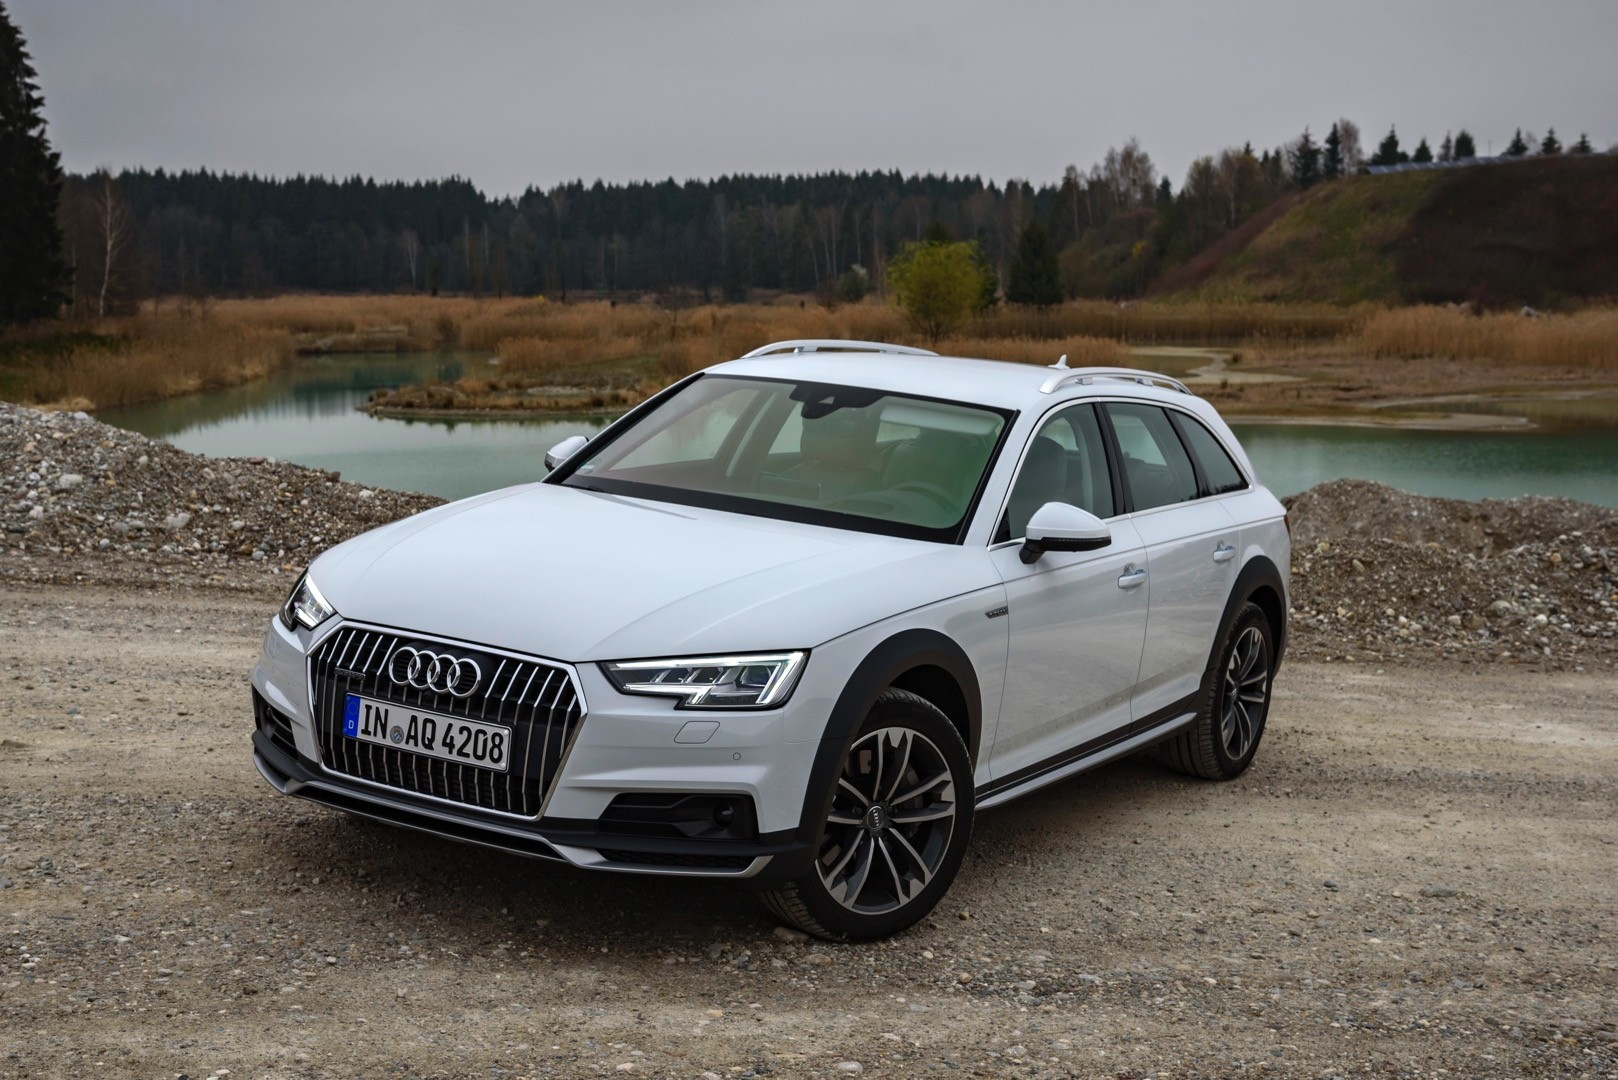 2017 audi a4 allroad quattro priced from 44 950. Black Bedroom Furniture Sets. Home Design Ideas